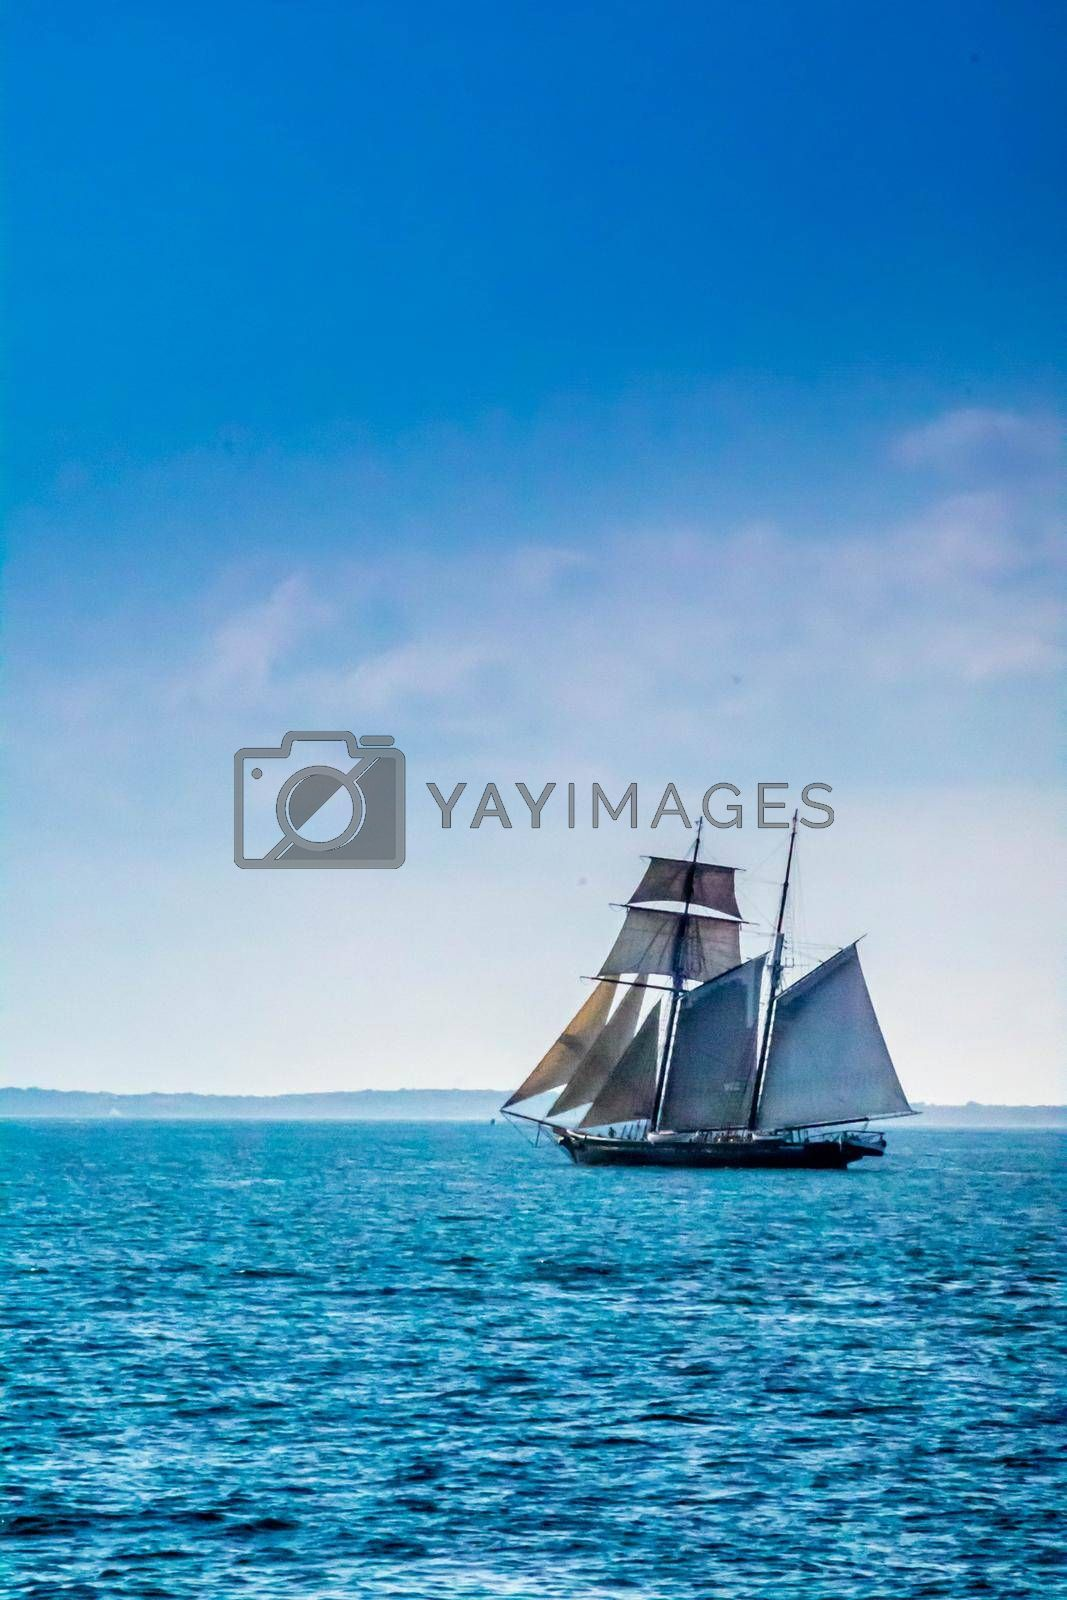 Royalty free image of Cape Cod Marthas Vineyard, MA, USA - Sept 4, 2018: A sailing yacht boat cruising along the shore of Cape Cod by cherialguire